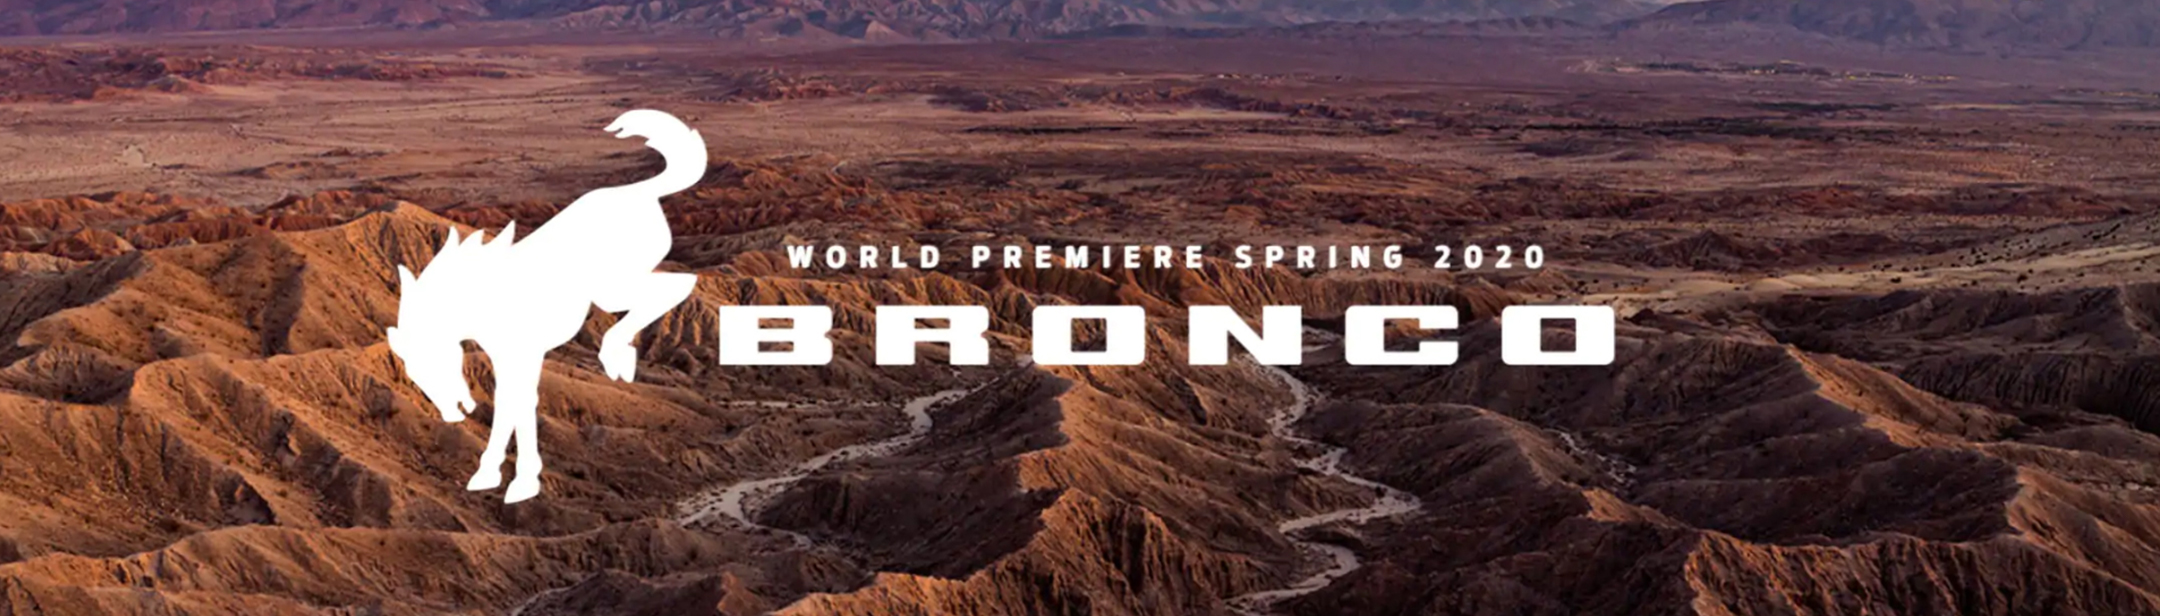 world premiere spring 2020 ford bronco